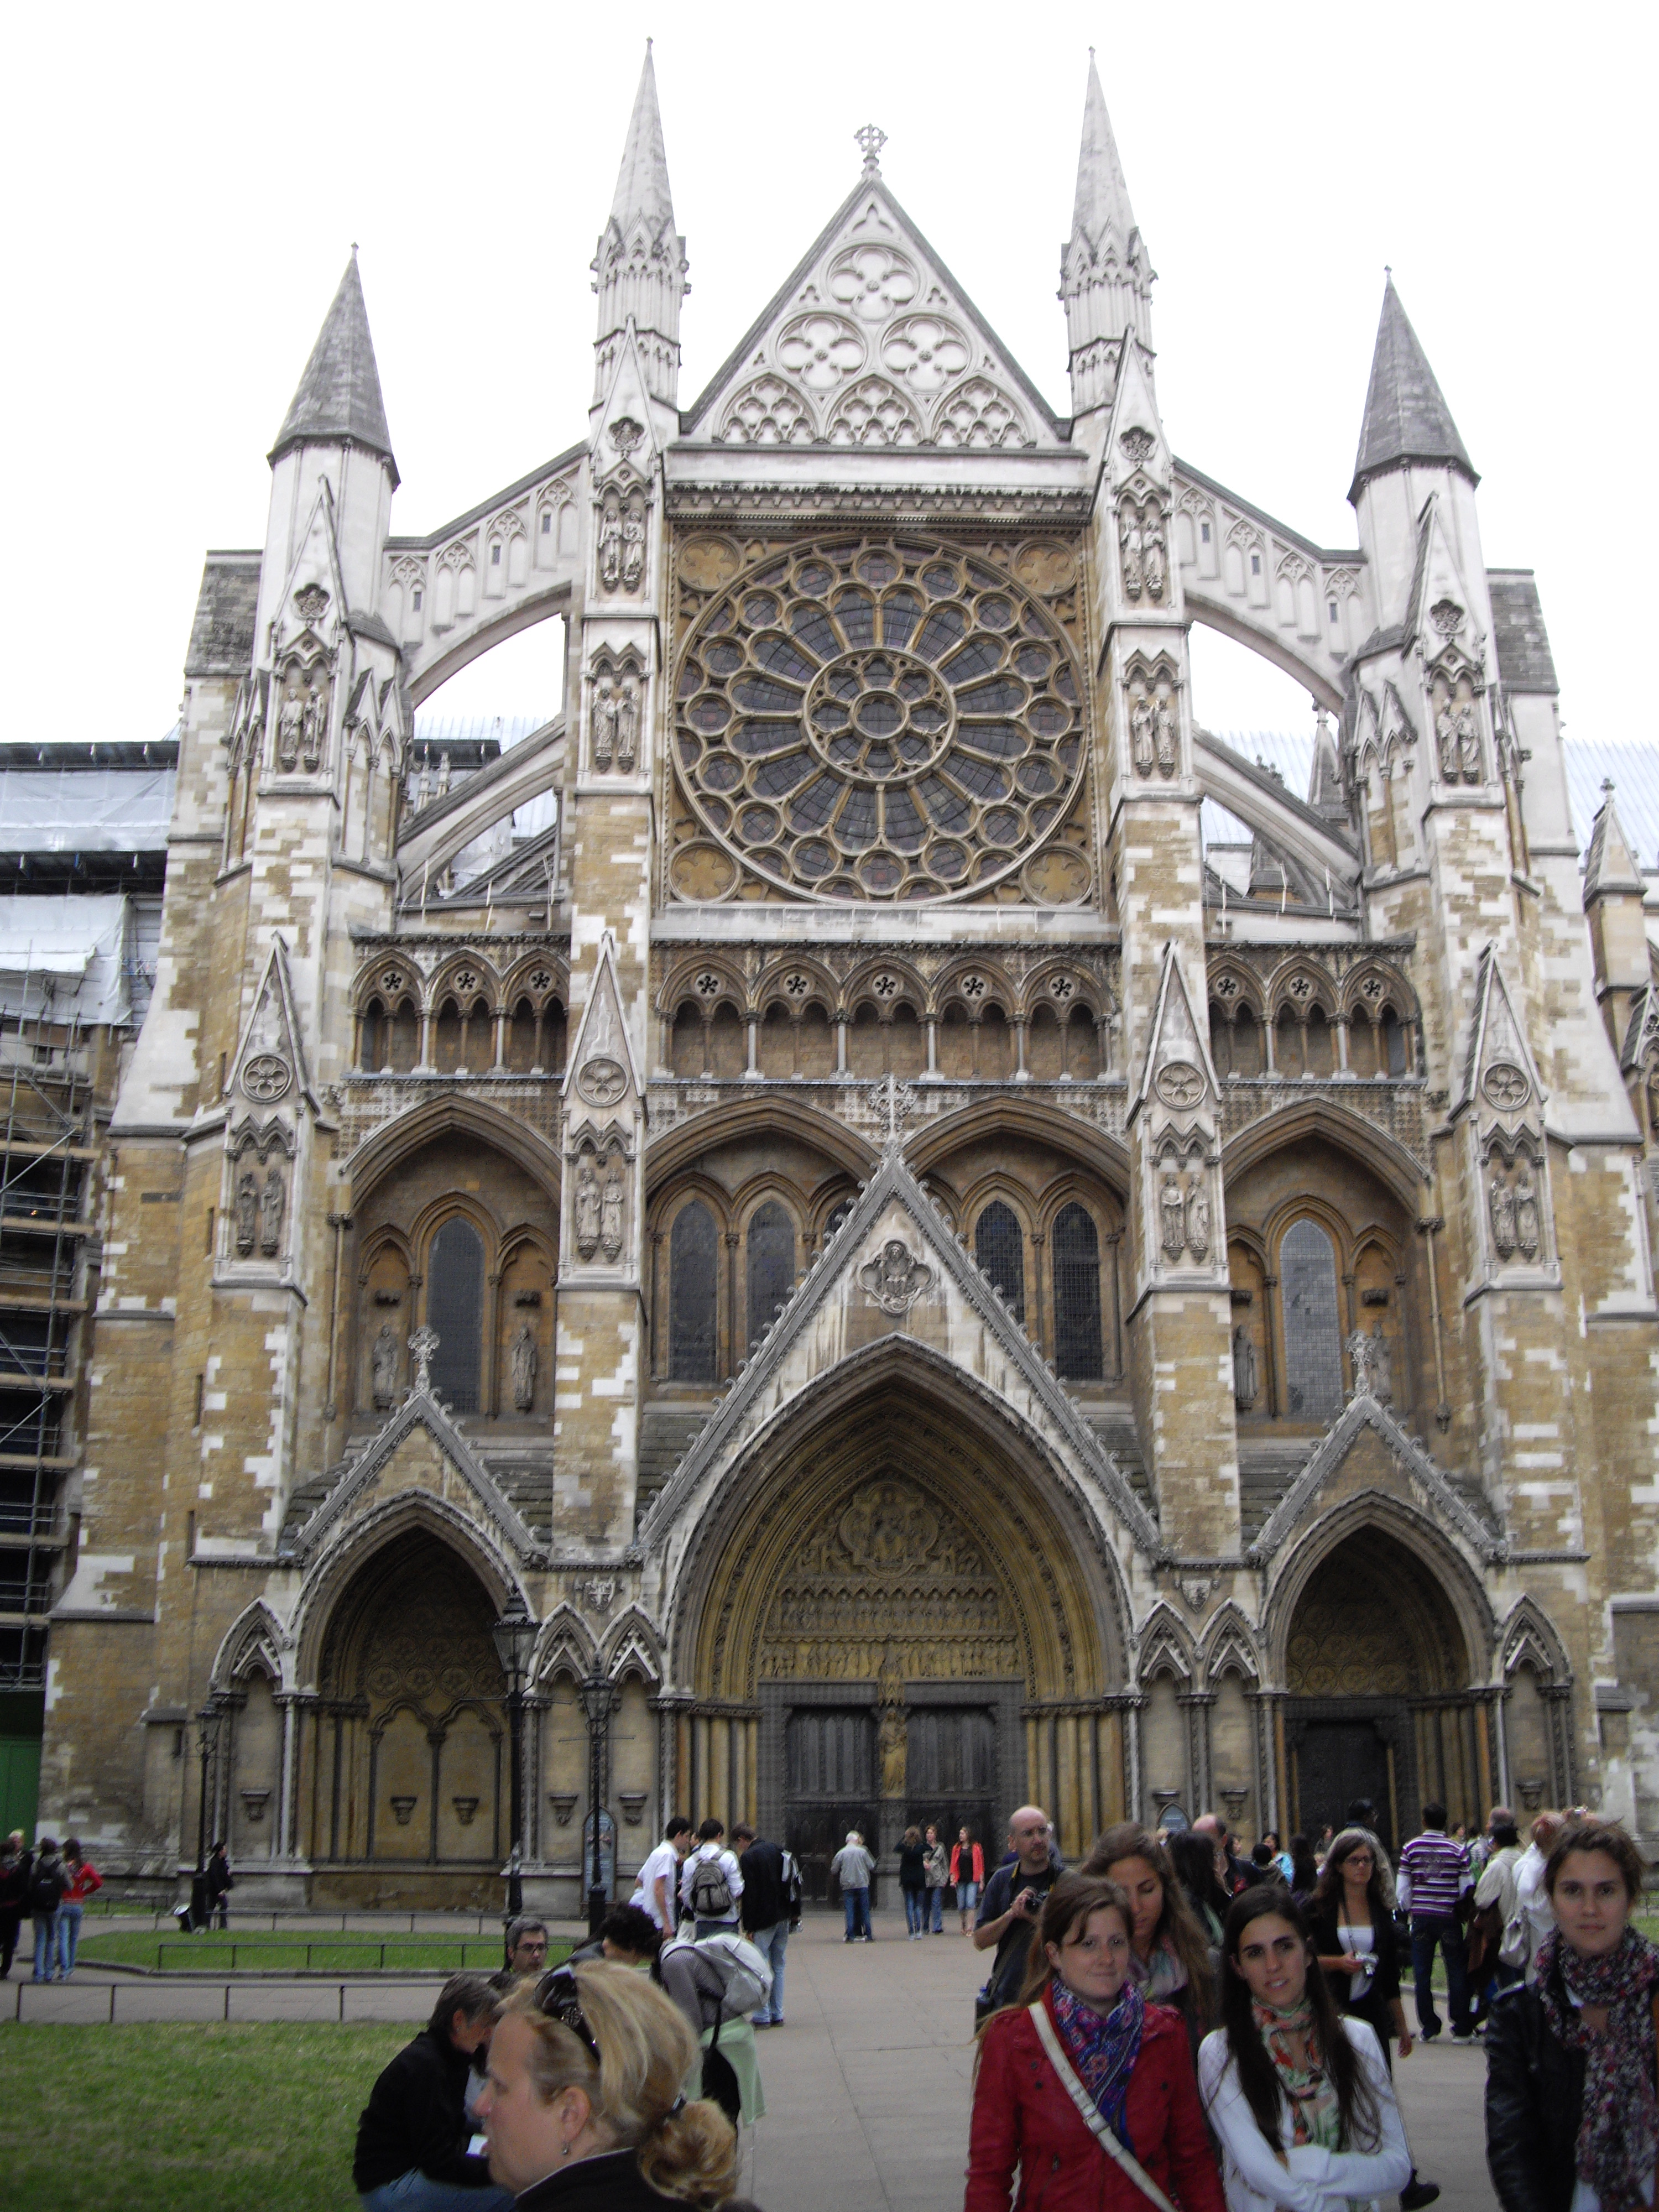 Stunning Westminster Abbey - a highlight for me